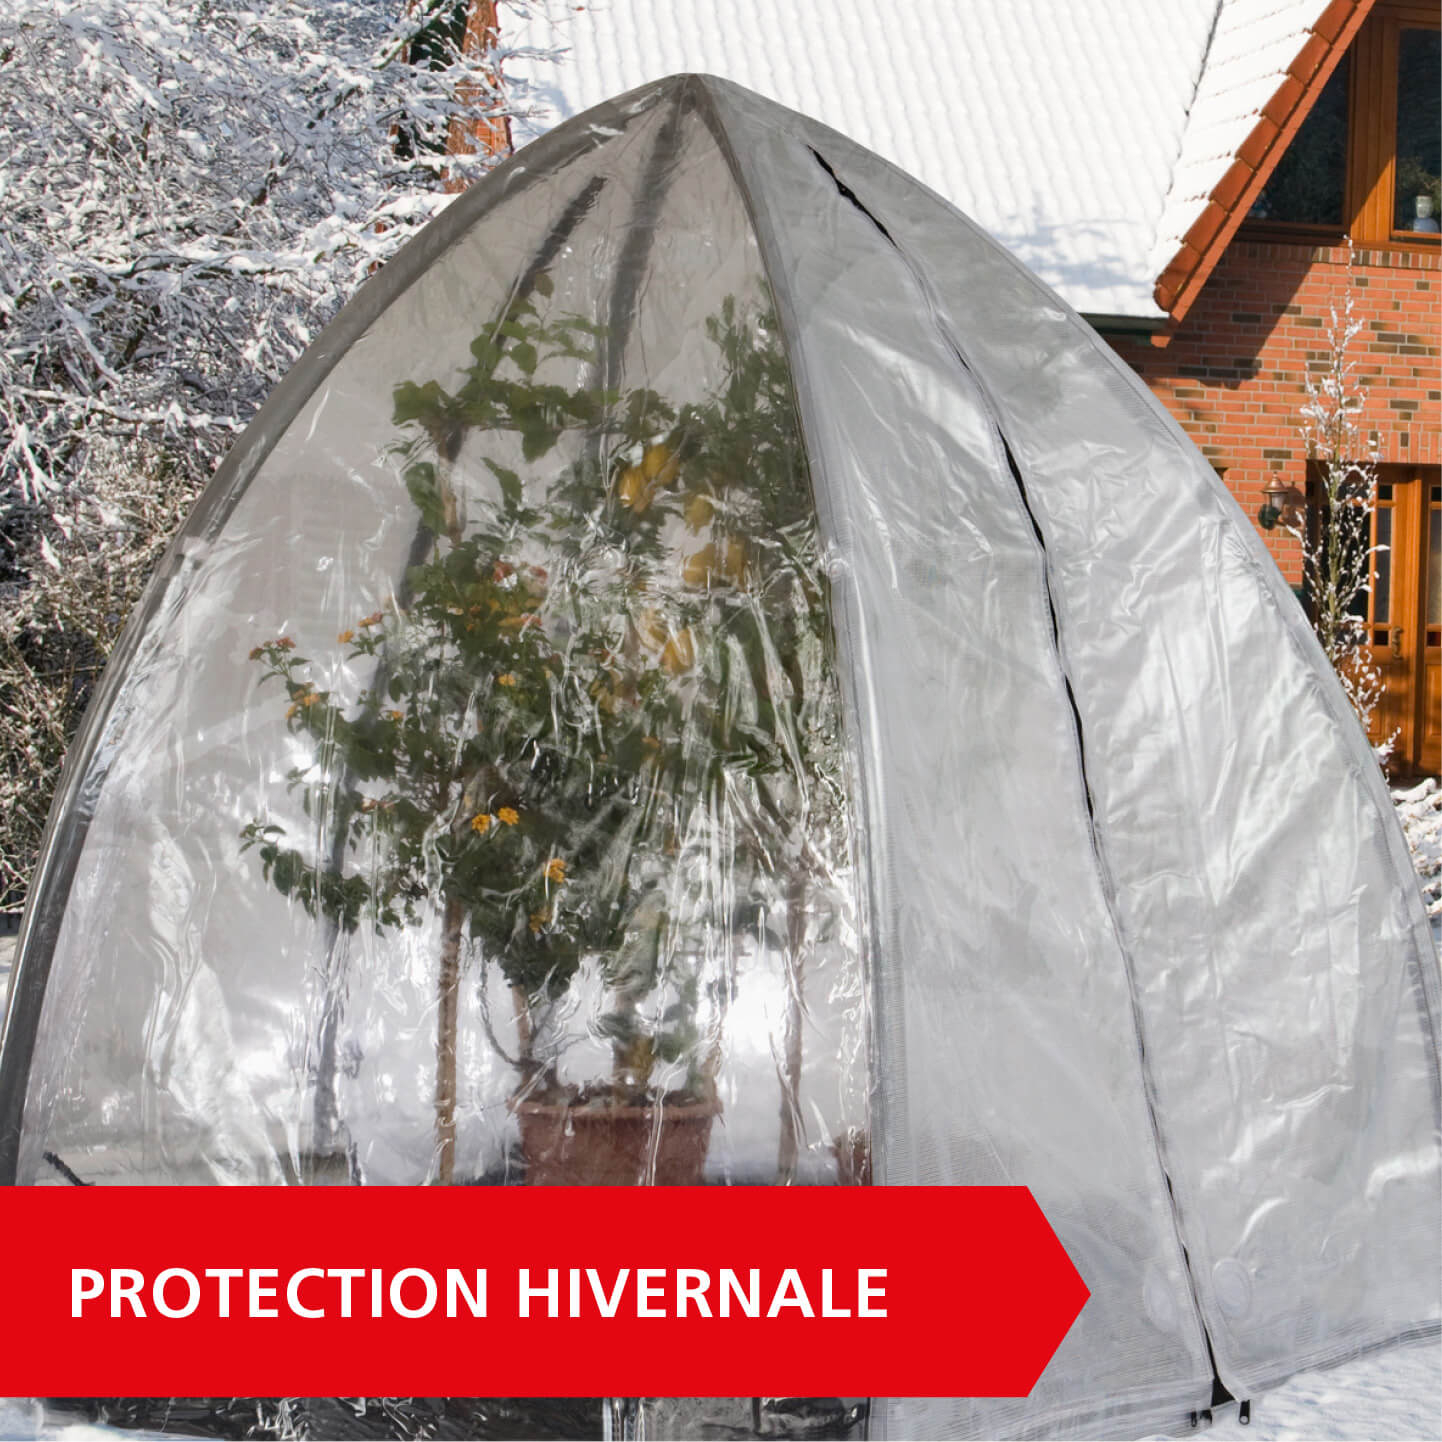 Protection hivernale